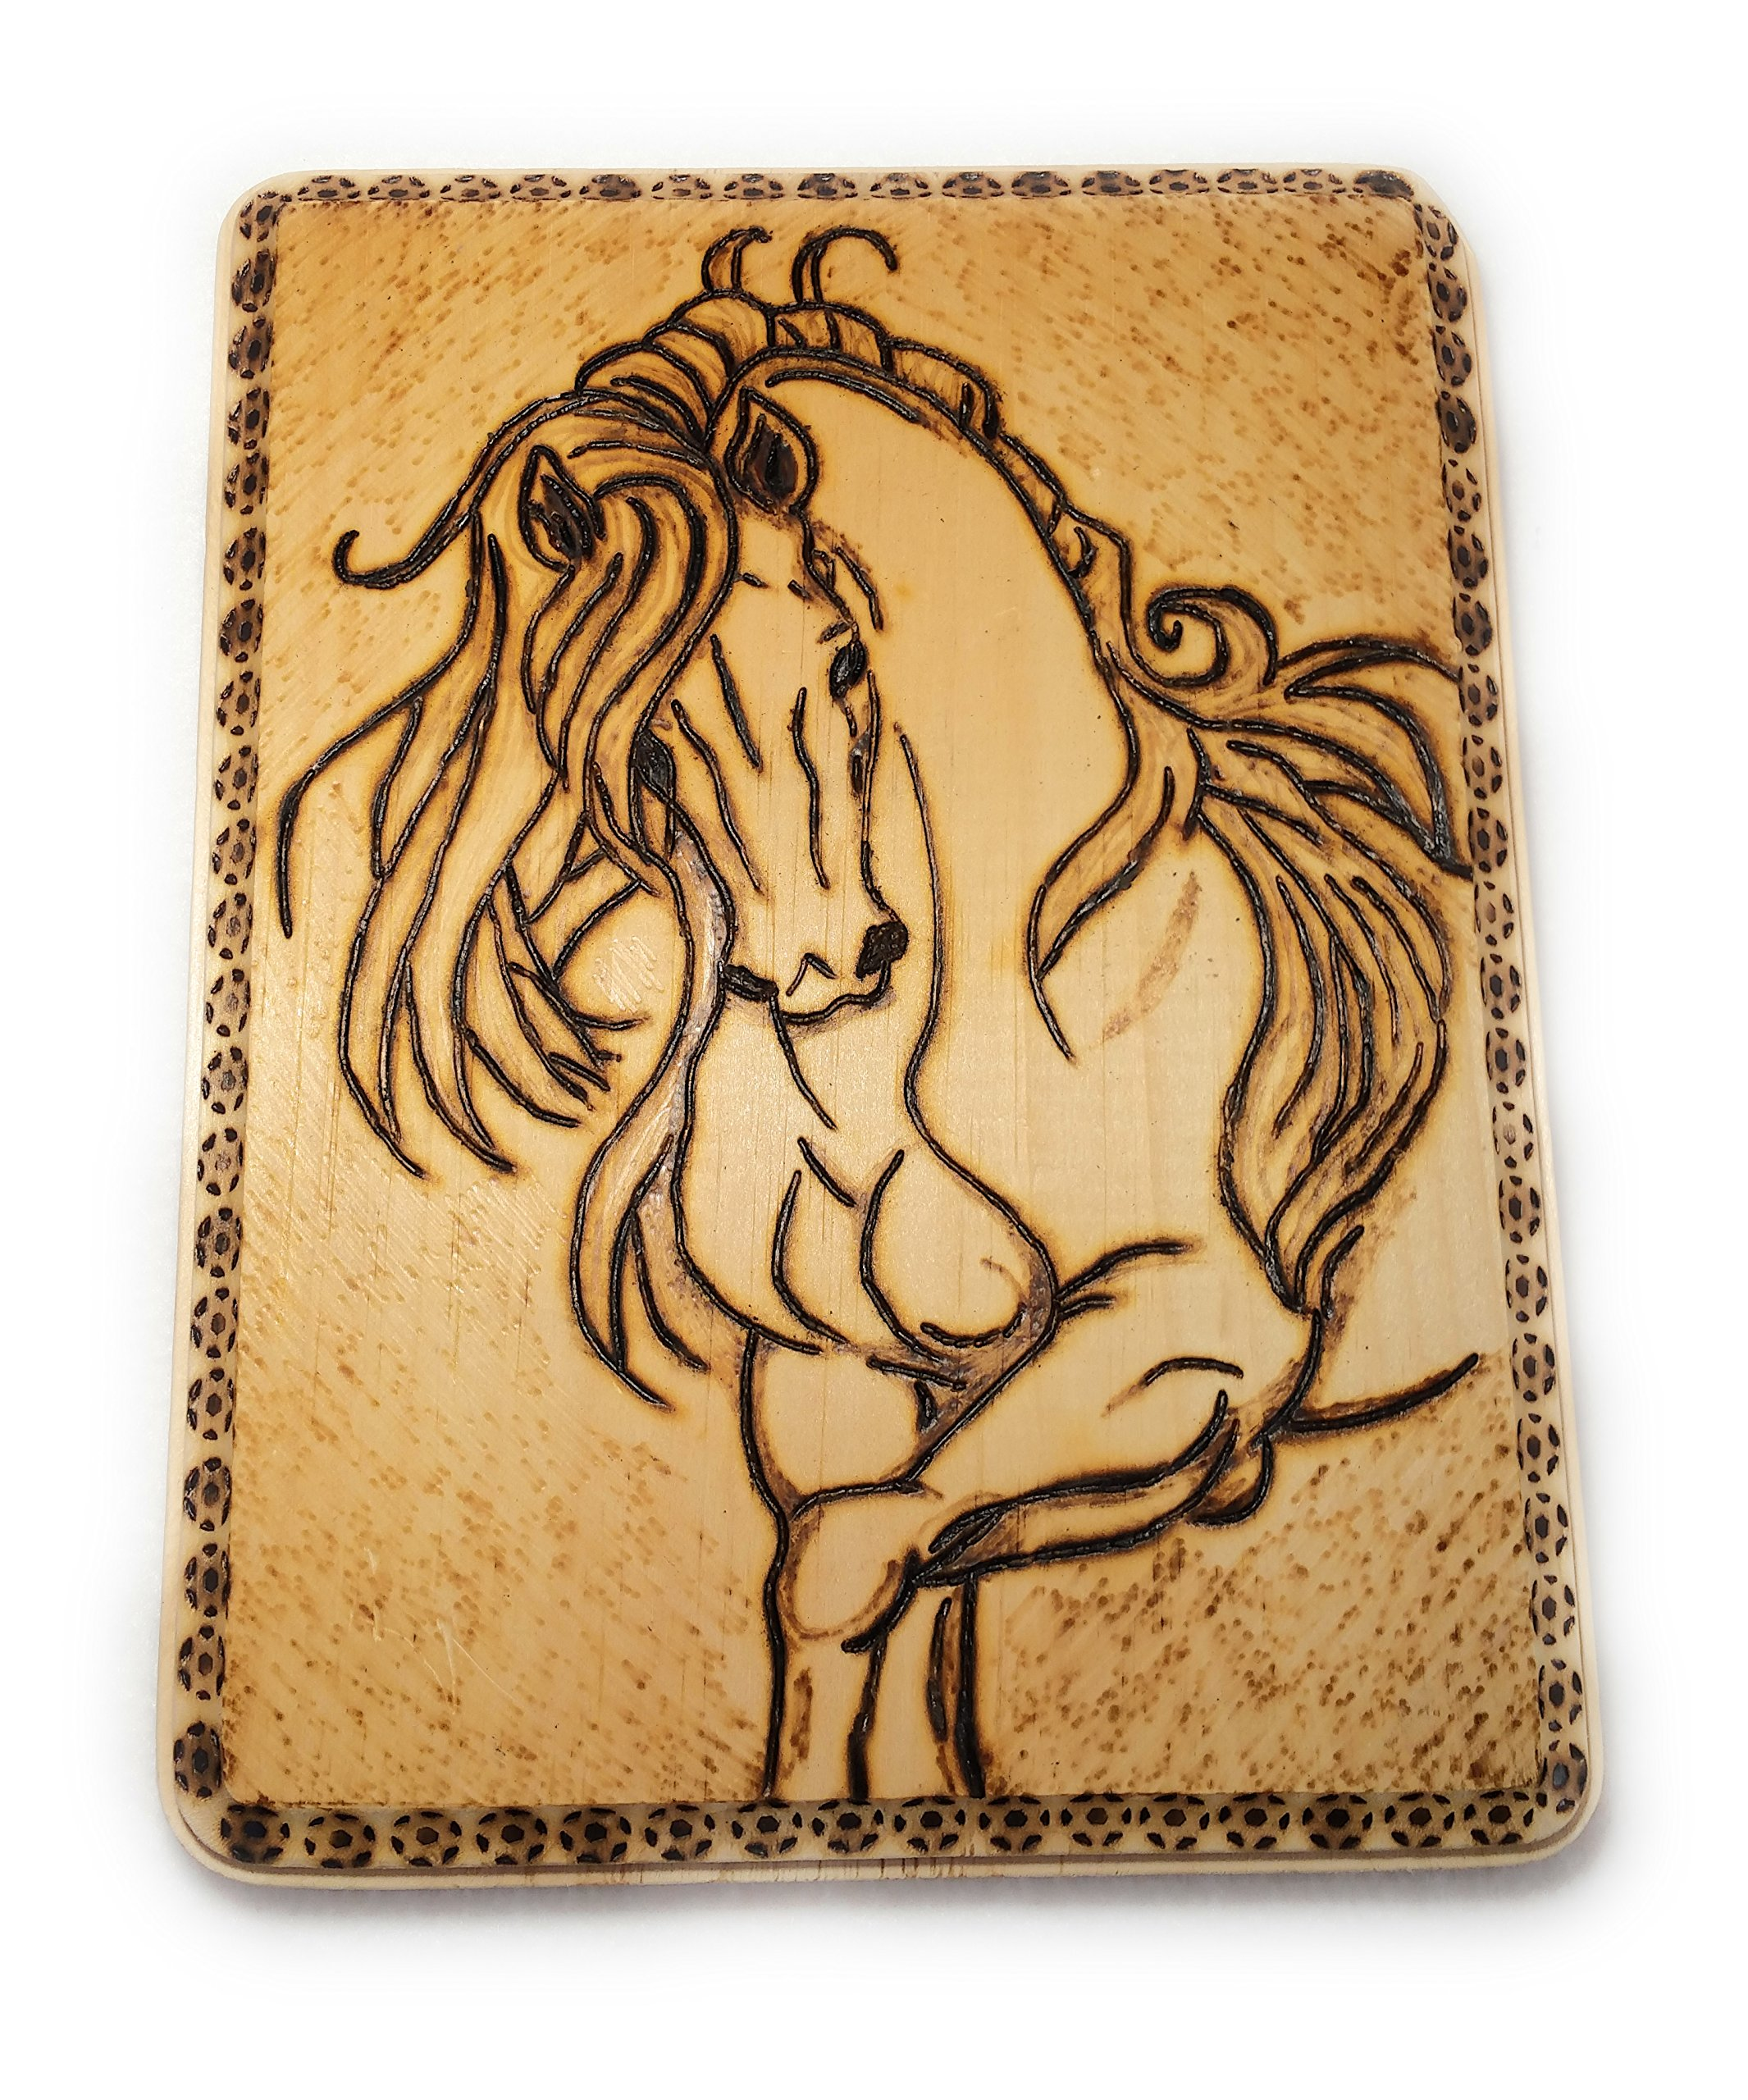 Home Decor Wood Burned Wall Hanging by Cimber's Home Decor+More (Image #2)